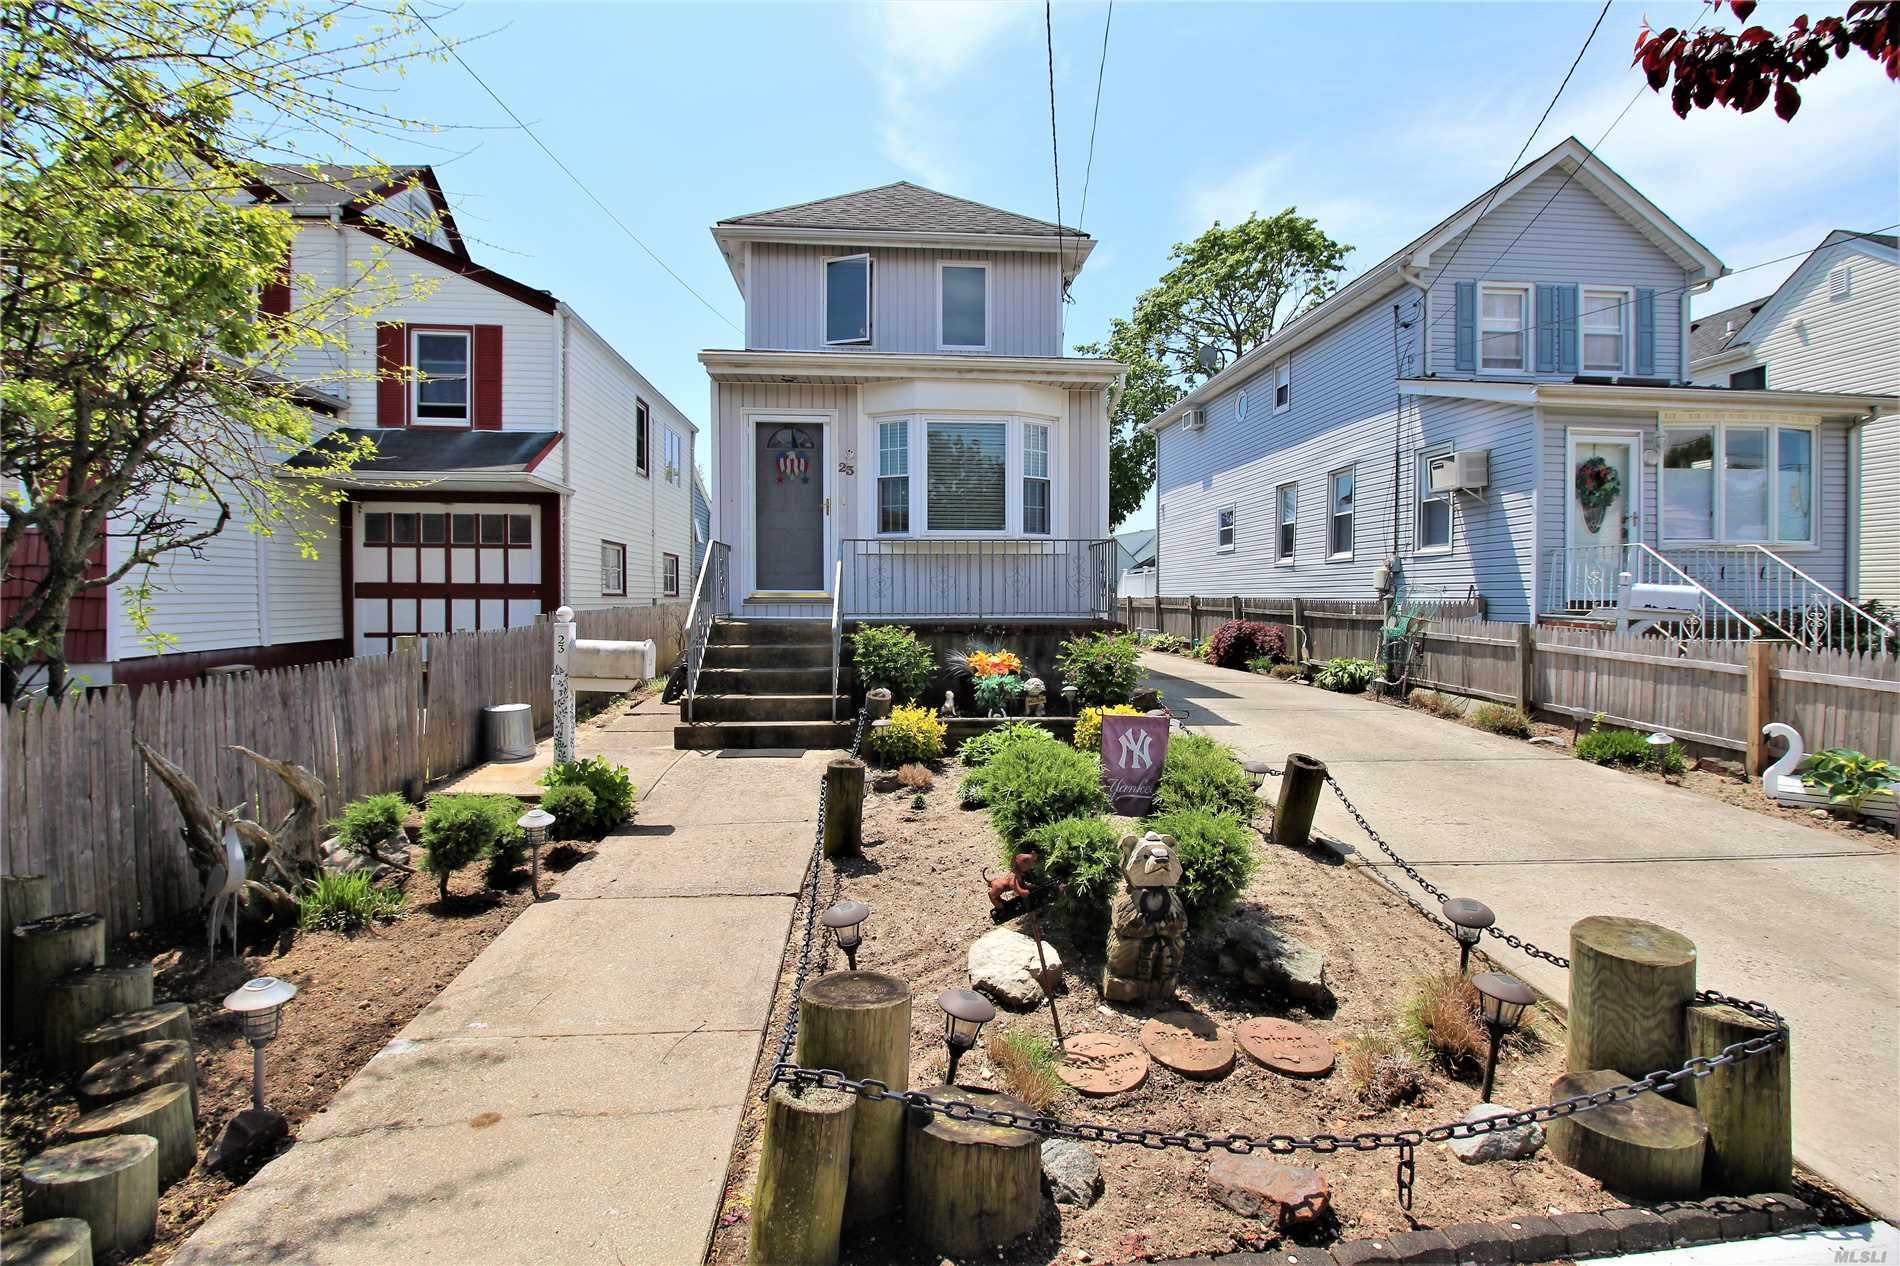 Super Charming 3 Bedroom 2 Bath Colonial on 125 Foot Deep Property. Features Include; Formal Living Room & Dining Room, Updated Eat In Kitchen w/Peninsula, Pantry Closet & Door To Private Yard. 3 Nice Bedrooms, Gas Cooking & Navien Heating System. Oak Hardwood Floors, Sold Wood Doors & Moldings. 1.5 Car Garage, Attic & More. Low Taxes & Low Flood Insurance.